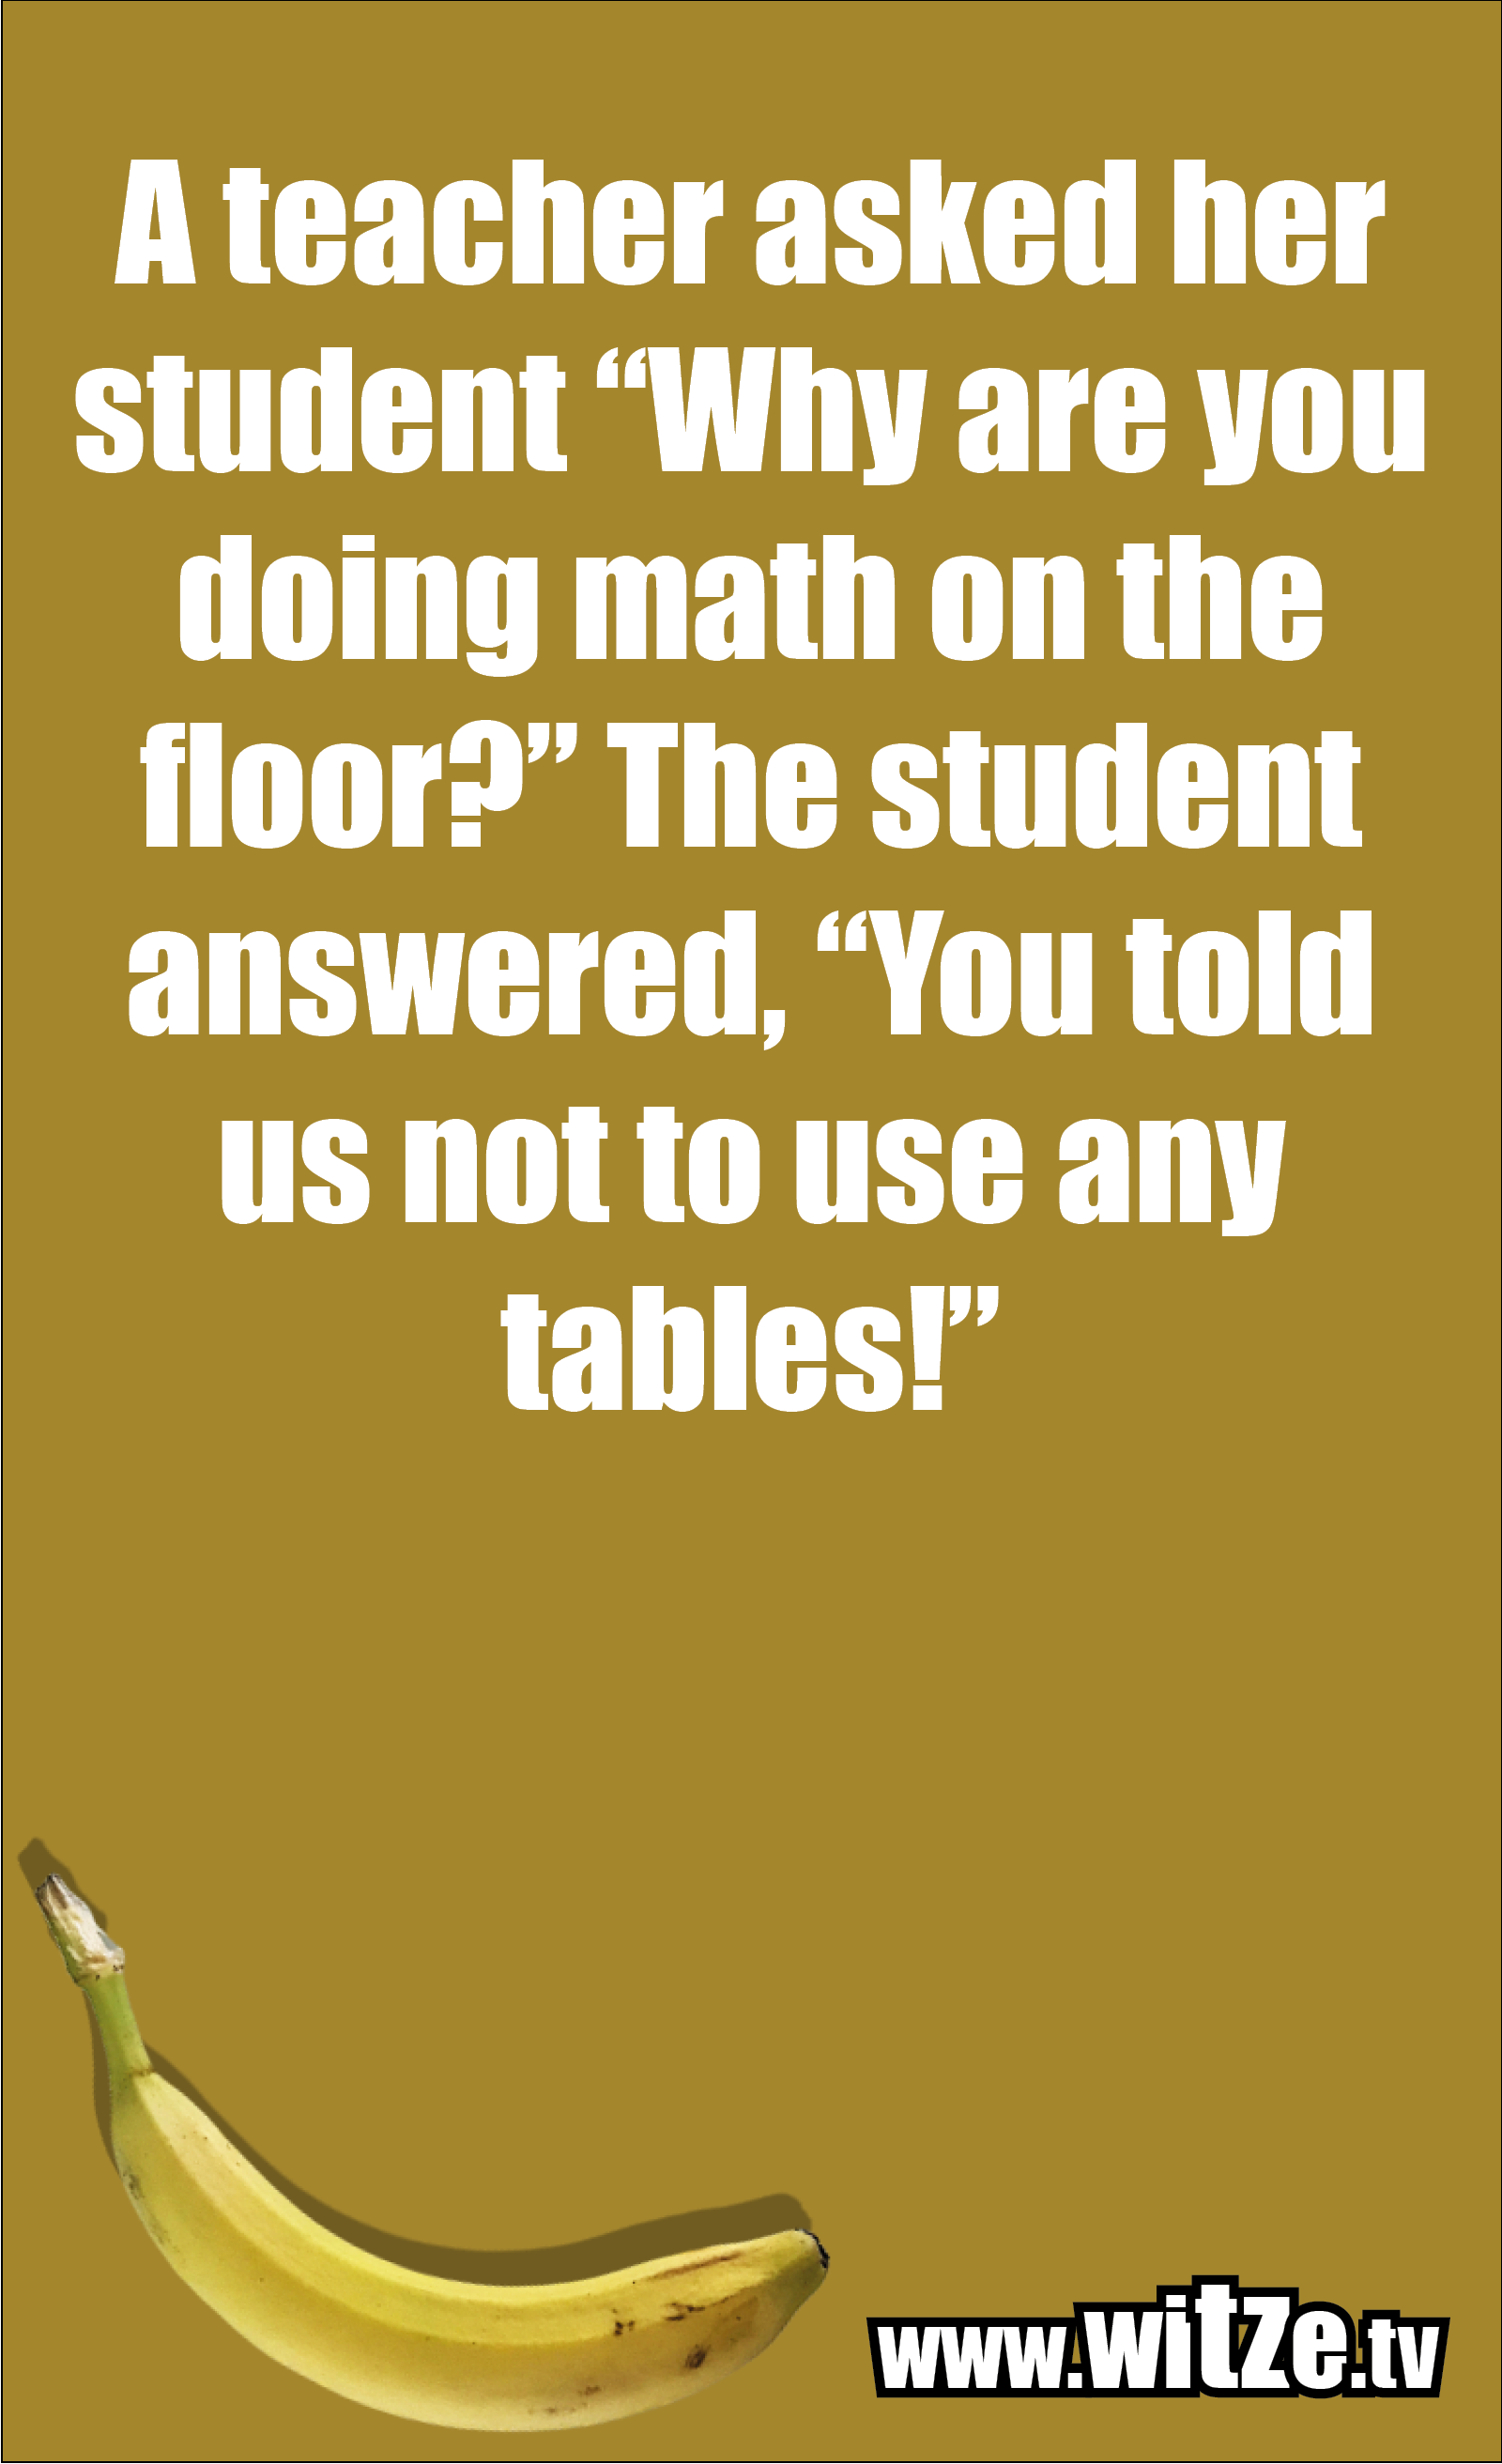 """Math joke… A teacher asked her student """"Why are you doing math on the floor?"""" The student answered, """"You told us not to use any tables!"""""""